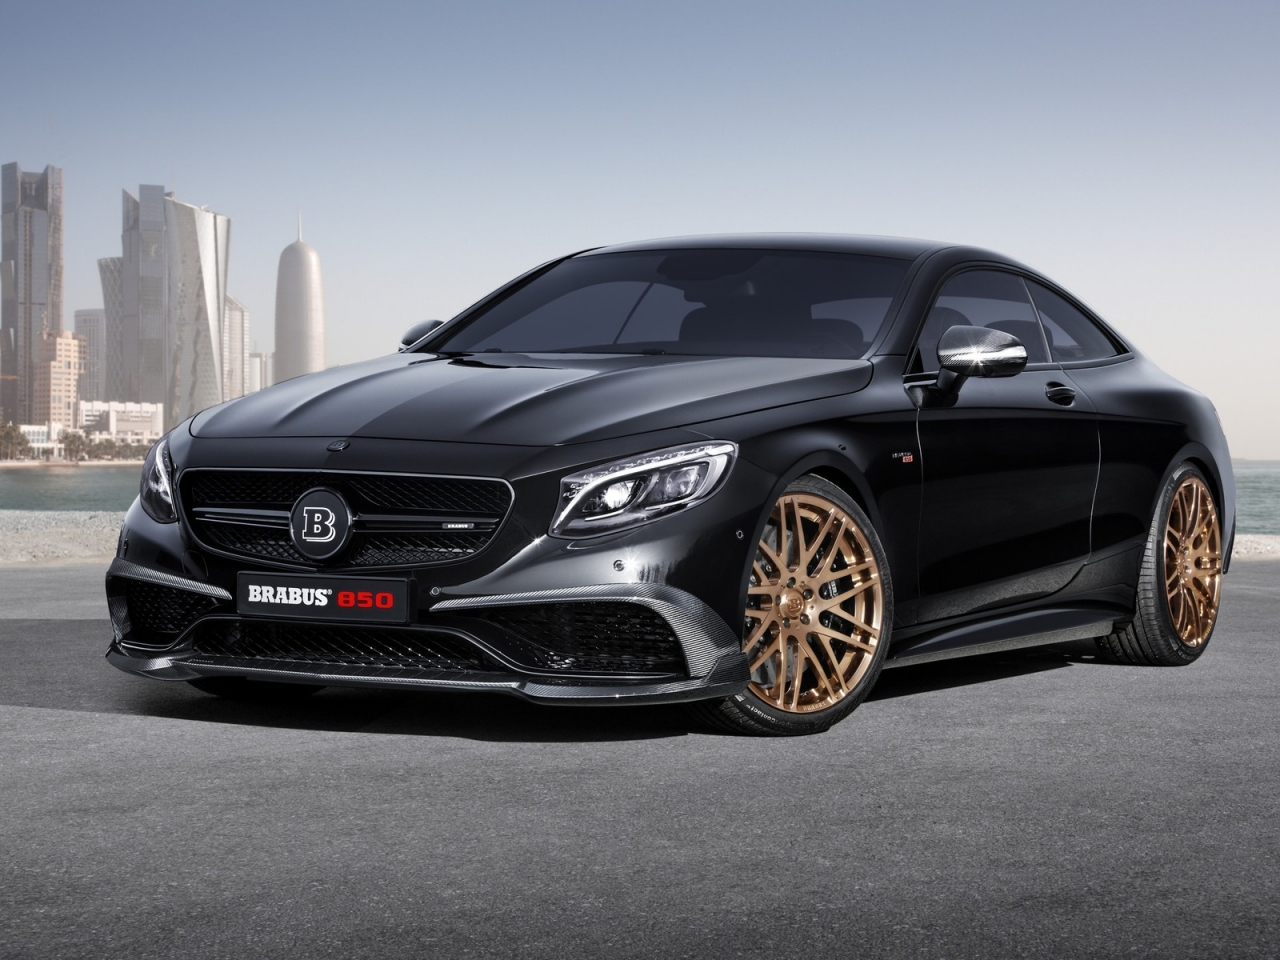 Black Mercedes Benz S63 AMG Brabus  for 1280 x 960 resolution